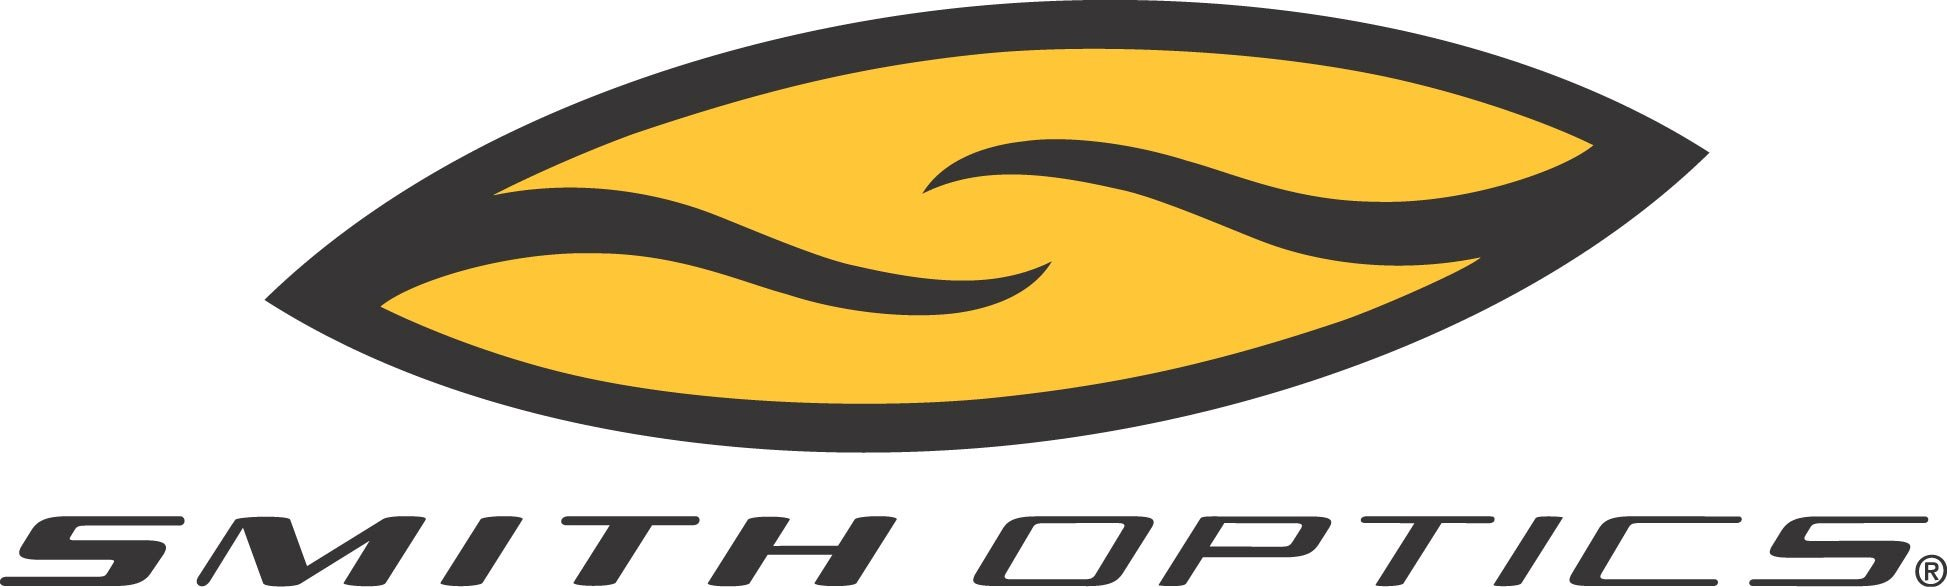 3smith_logo_1_yellow-full[1].jpg